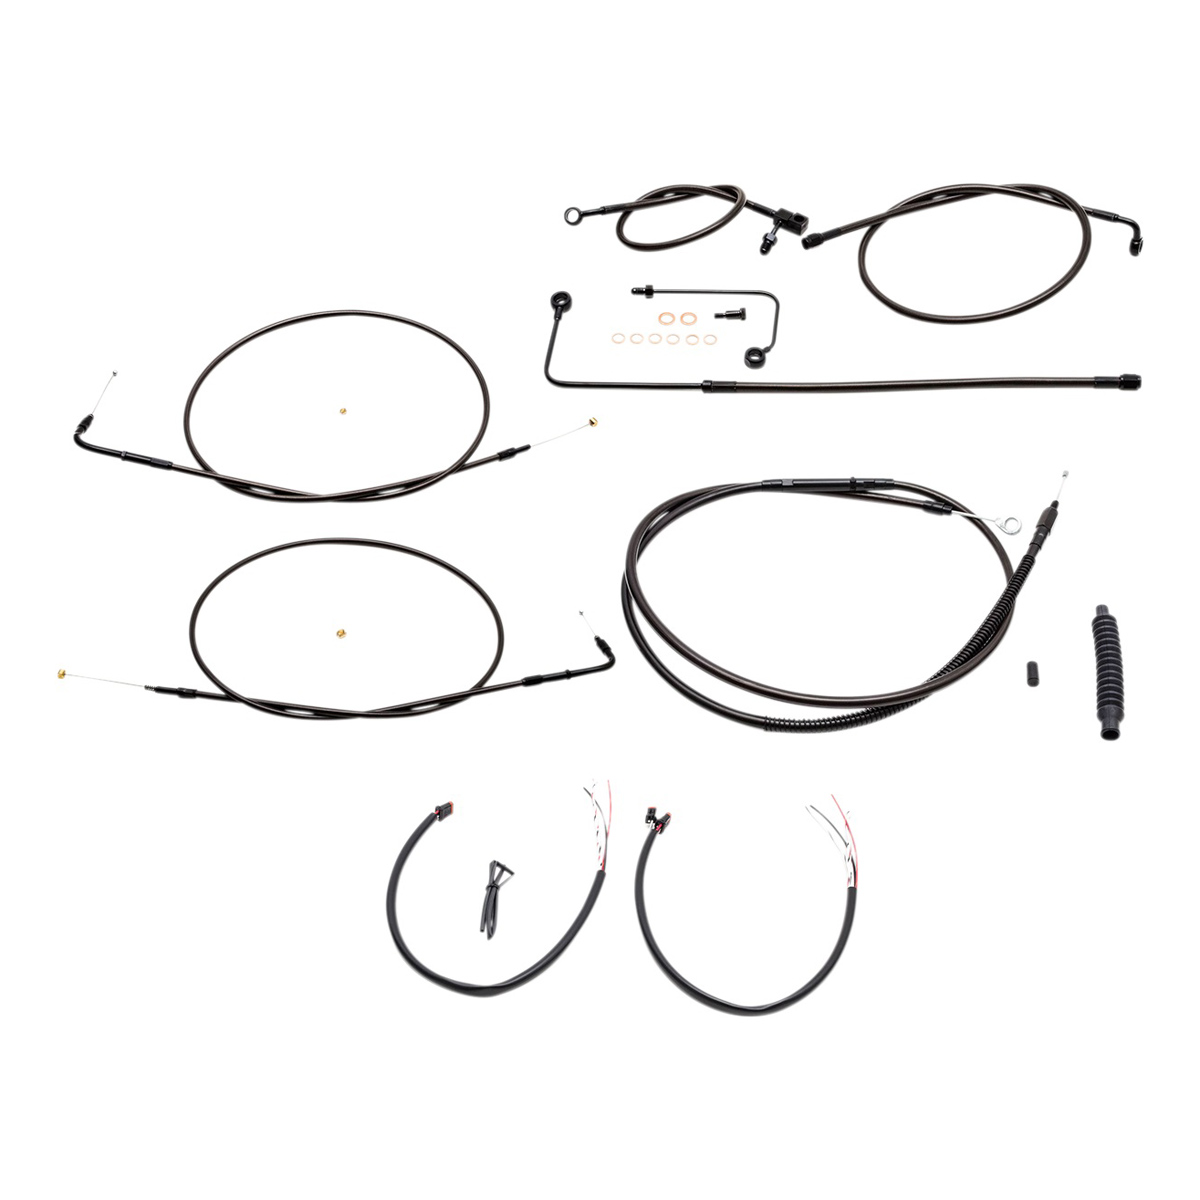 hight resolution of la choppers midnight complete cable line wiring handlebar kit for mini ape bars on